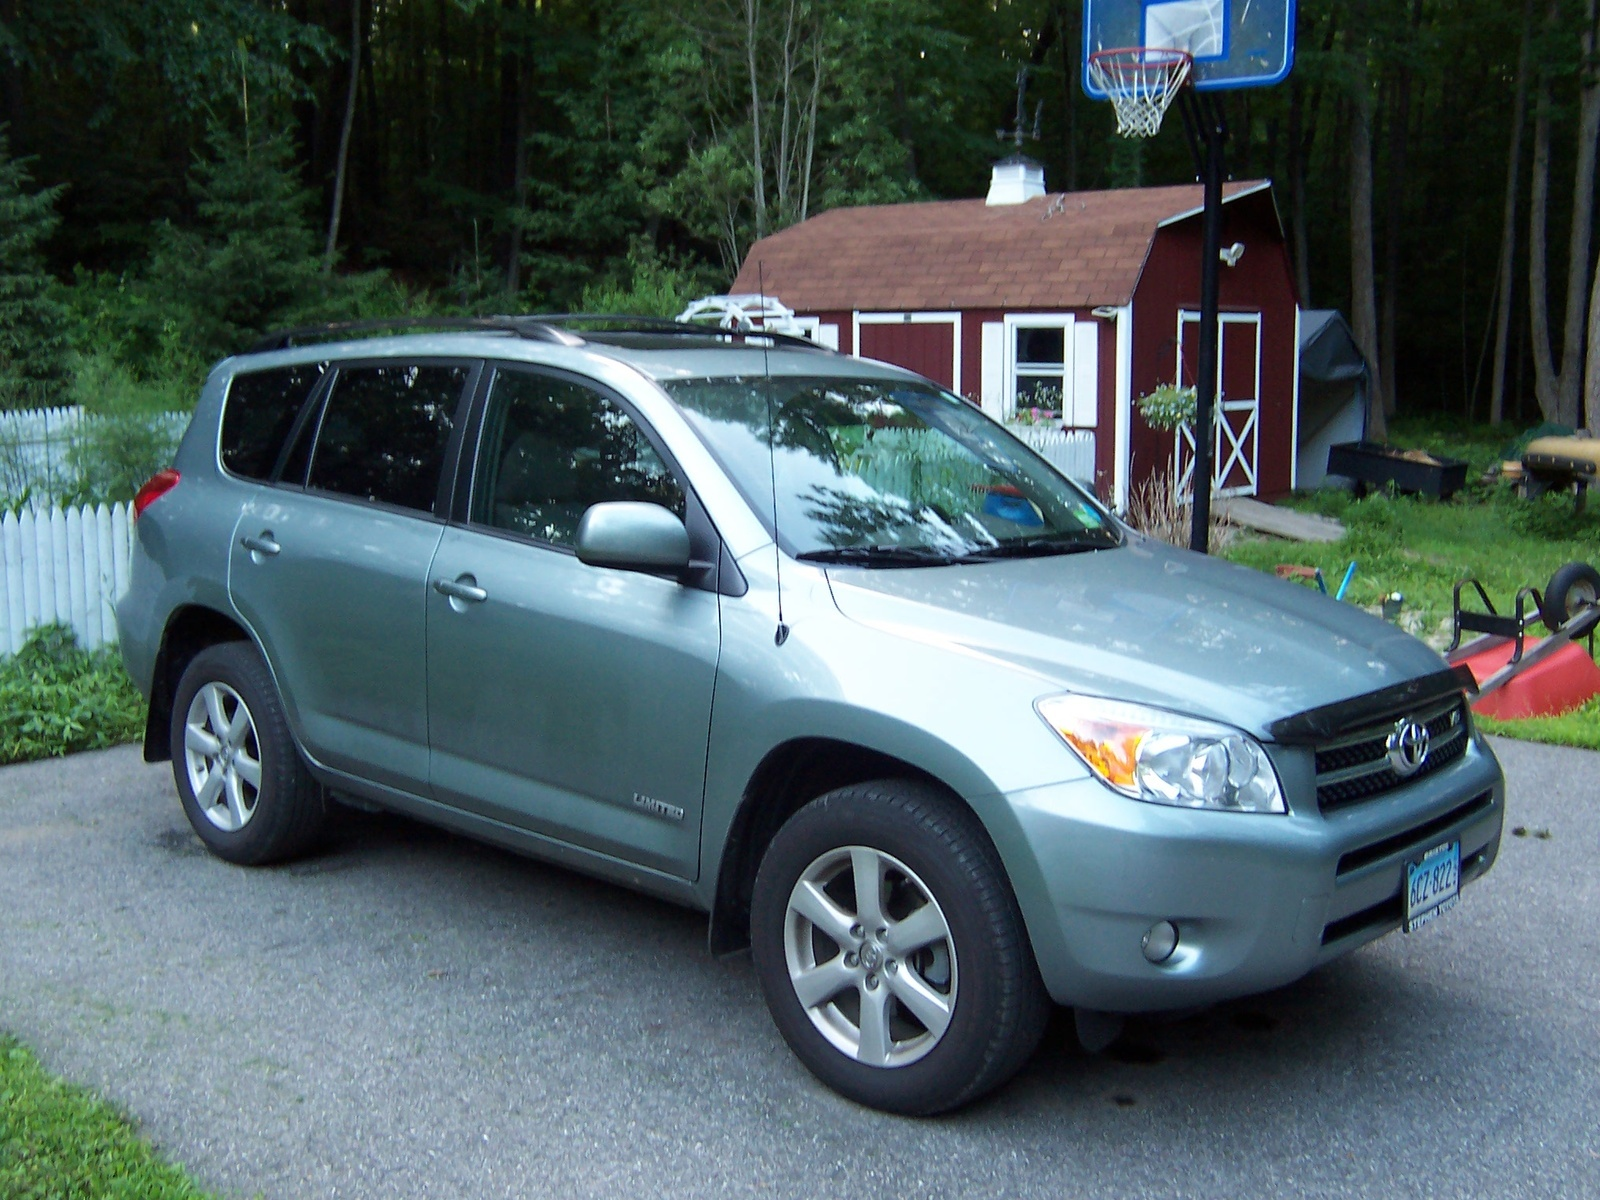 Ford Lincoln Of Franklin >> 2007 Toyota RAV4 - Overview - CarGurus